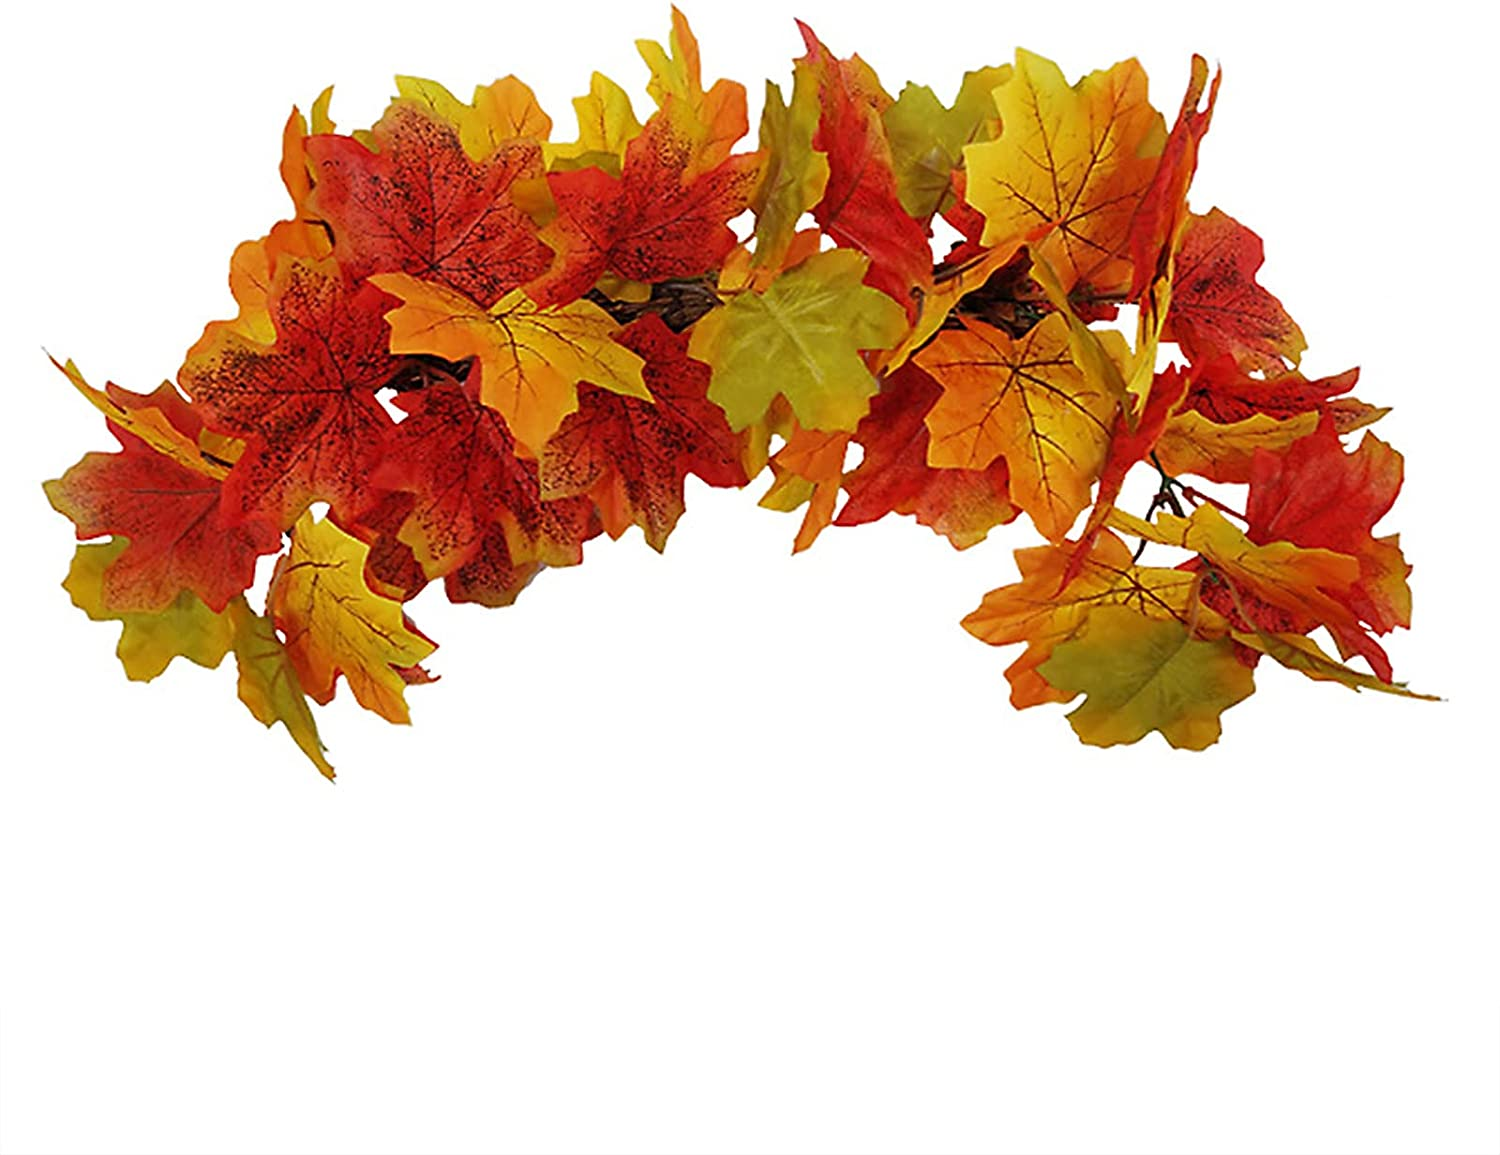 WUHNGD Artificial Choice Fall Swag Autumn Front Door Maple Ranking TOP18 Wr